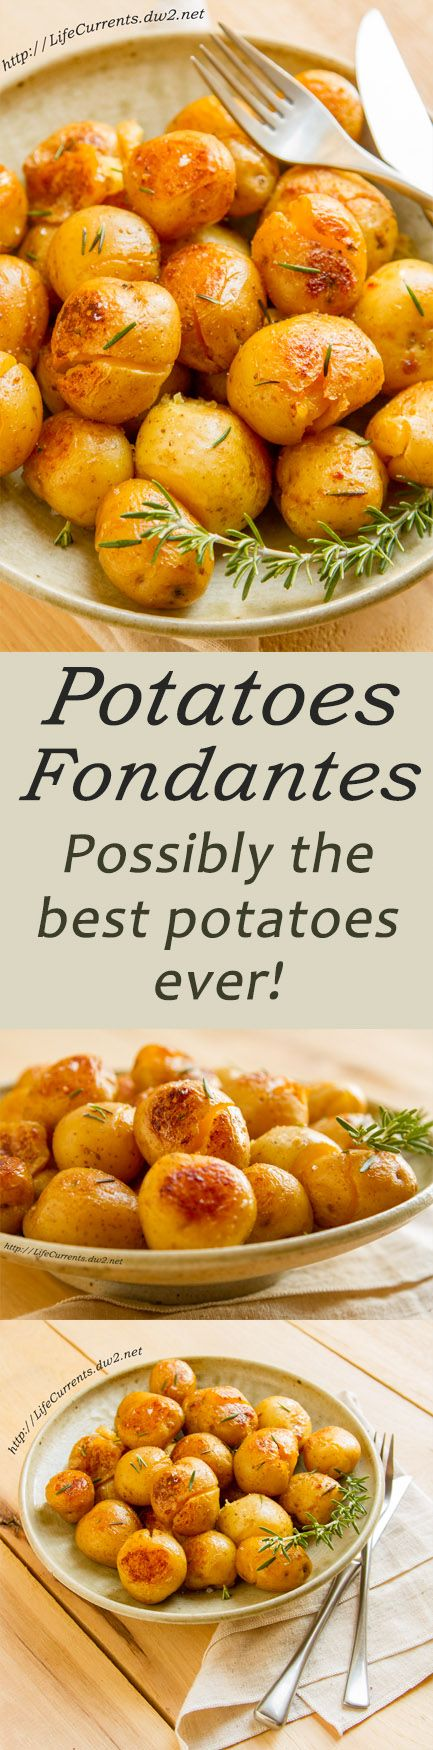 Potatoes Fondantes or smashed potatoes are a great side dish that your whole family will love! I always get tons of requests for this recipe!